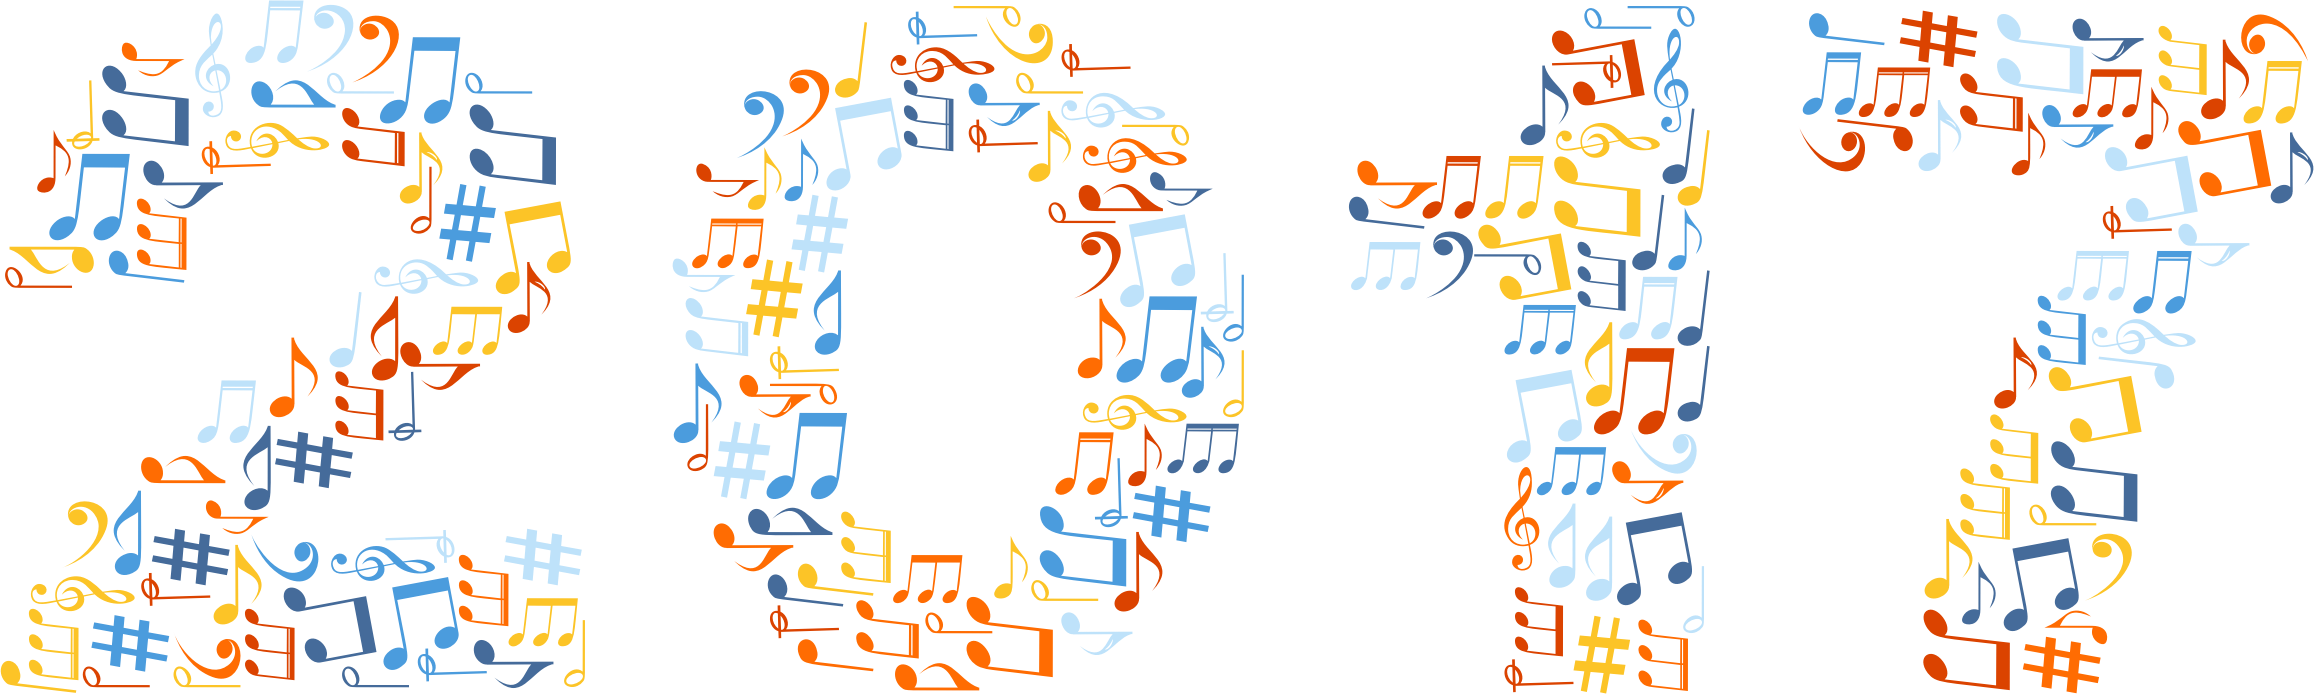 Download clipart no x. Colorful music notes background png graphic stock